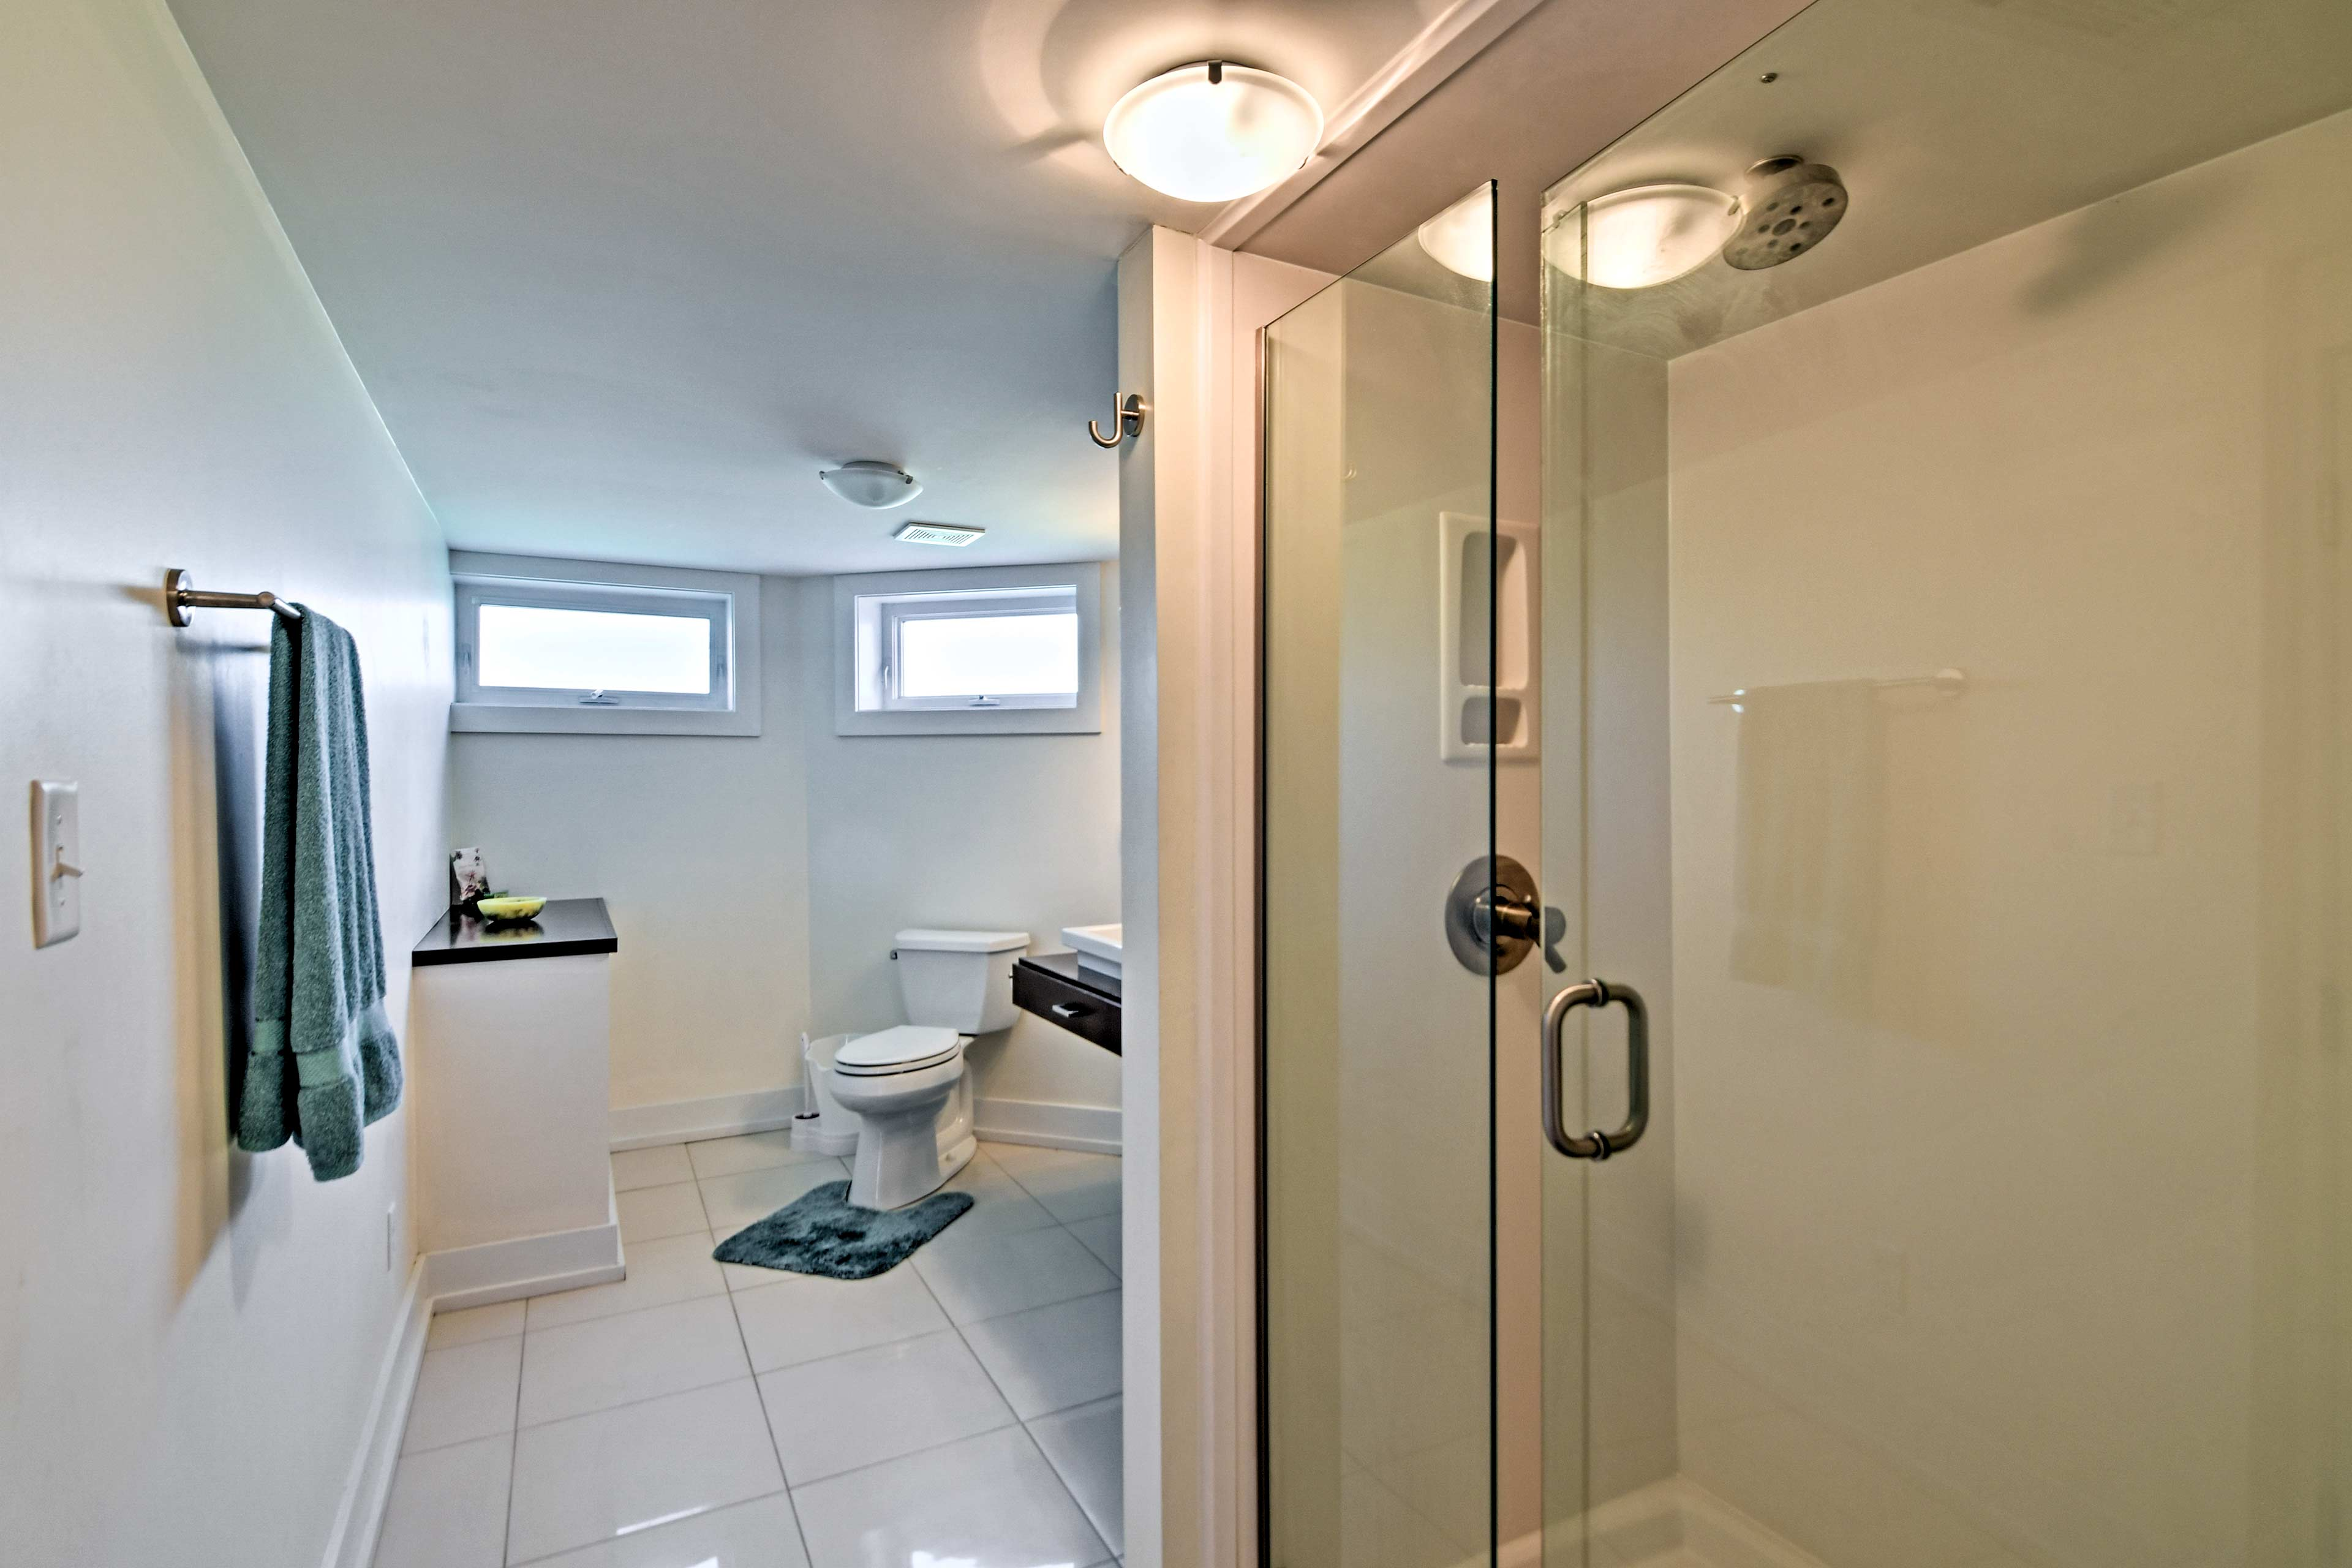 The home offers 5 full bathrooms, including the master en-suite bathroom.